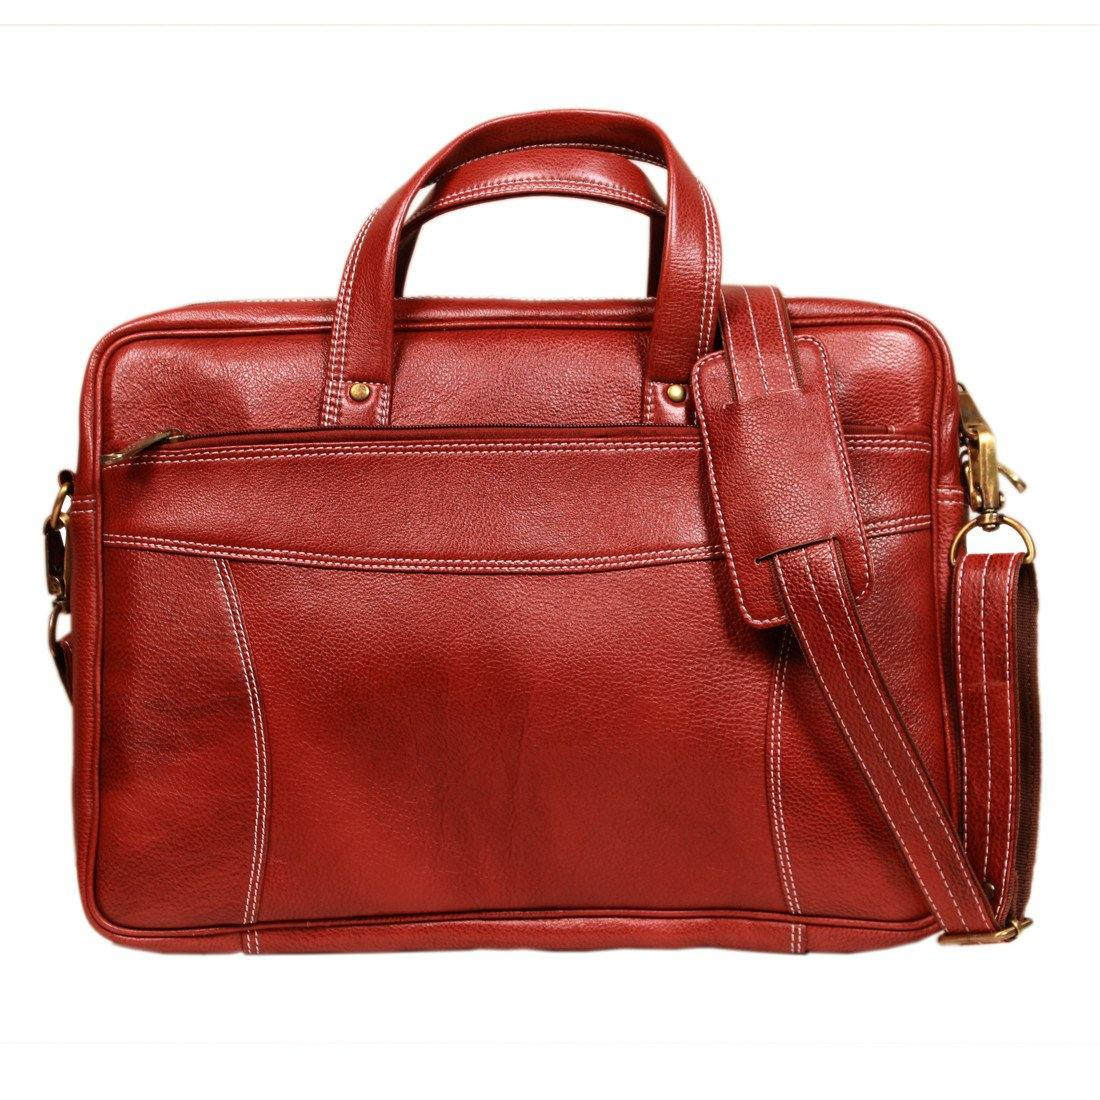 Leather World Maroon 15.6 inch Laptop Messenger Bag For Men and Women (Guaranteed Genuine Leather) - #OB1039